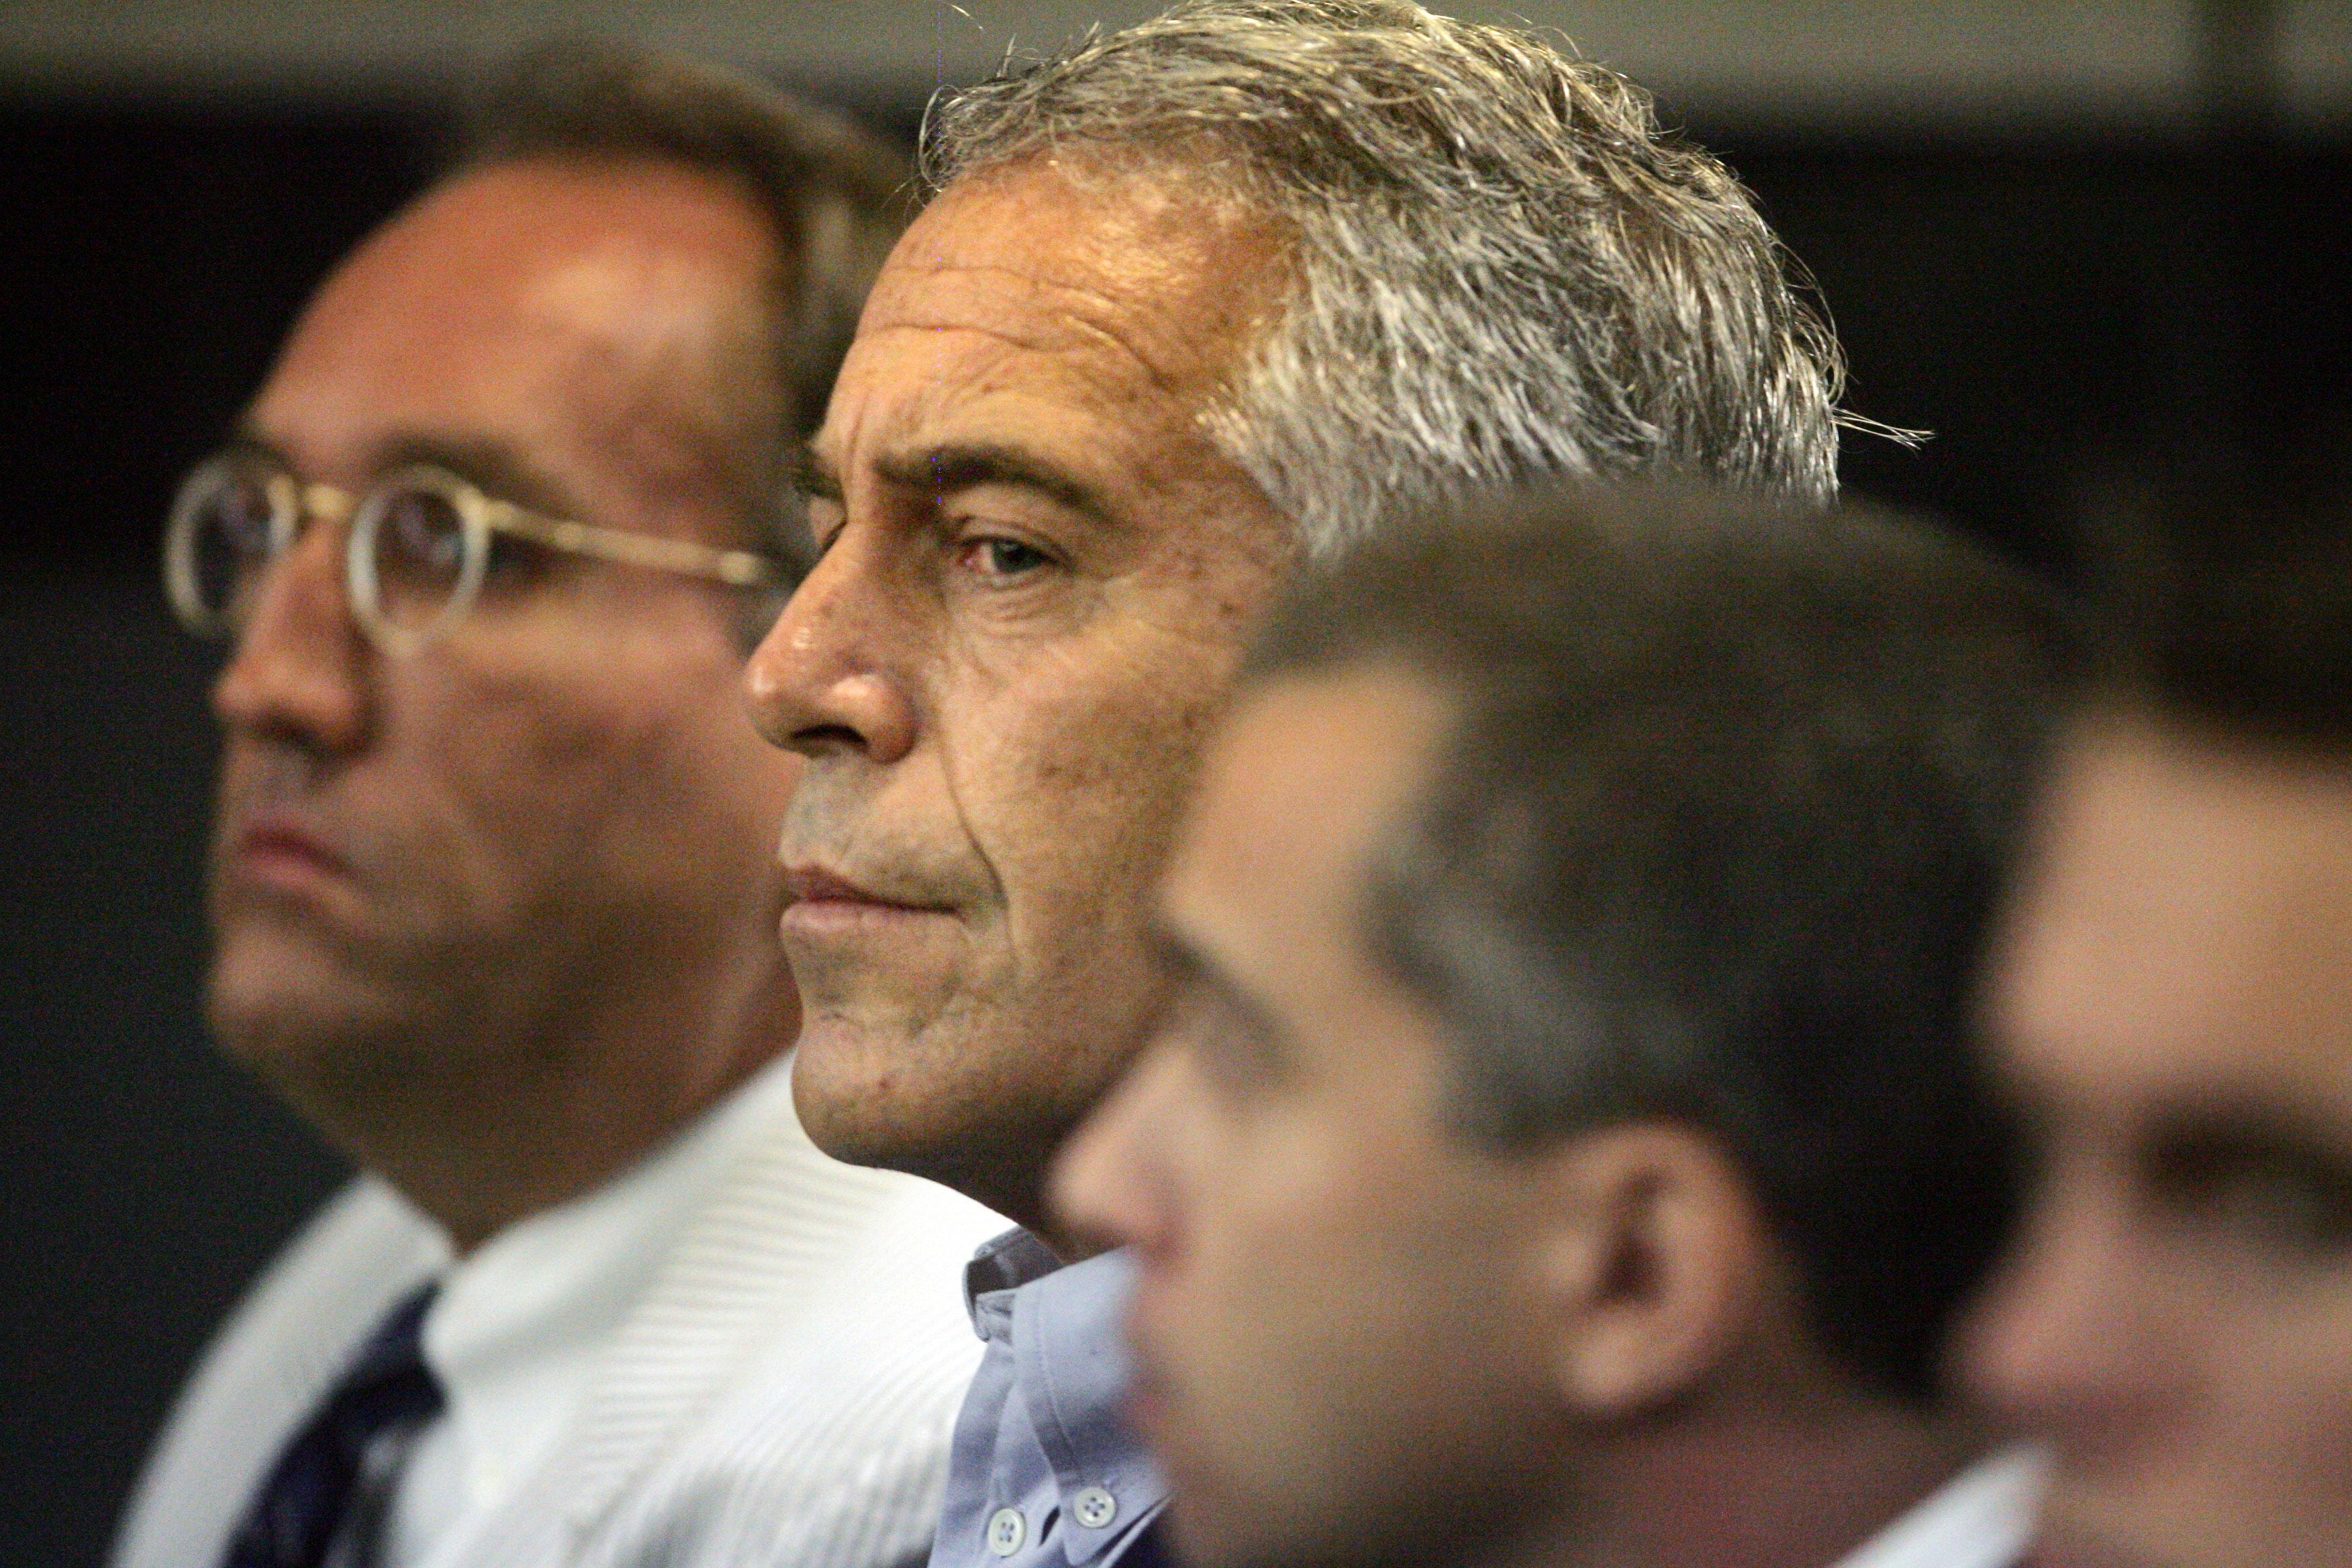 Financier Jeffrey Epstein reportedly arrested in NY on sex charges